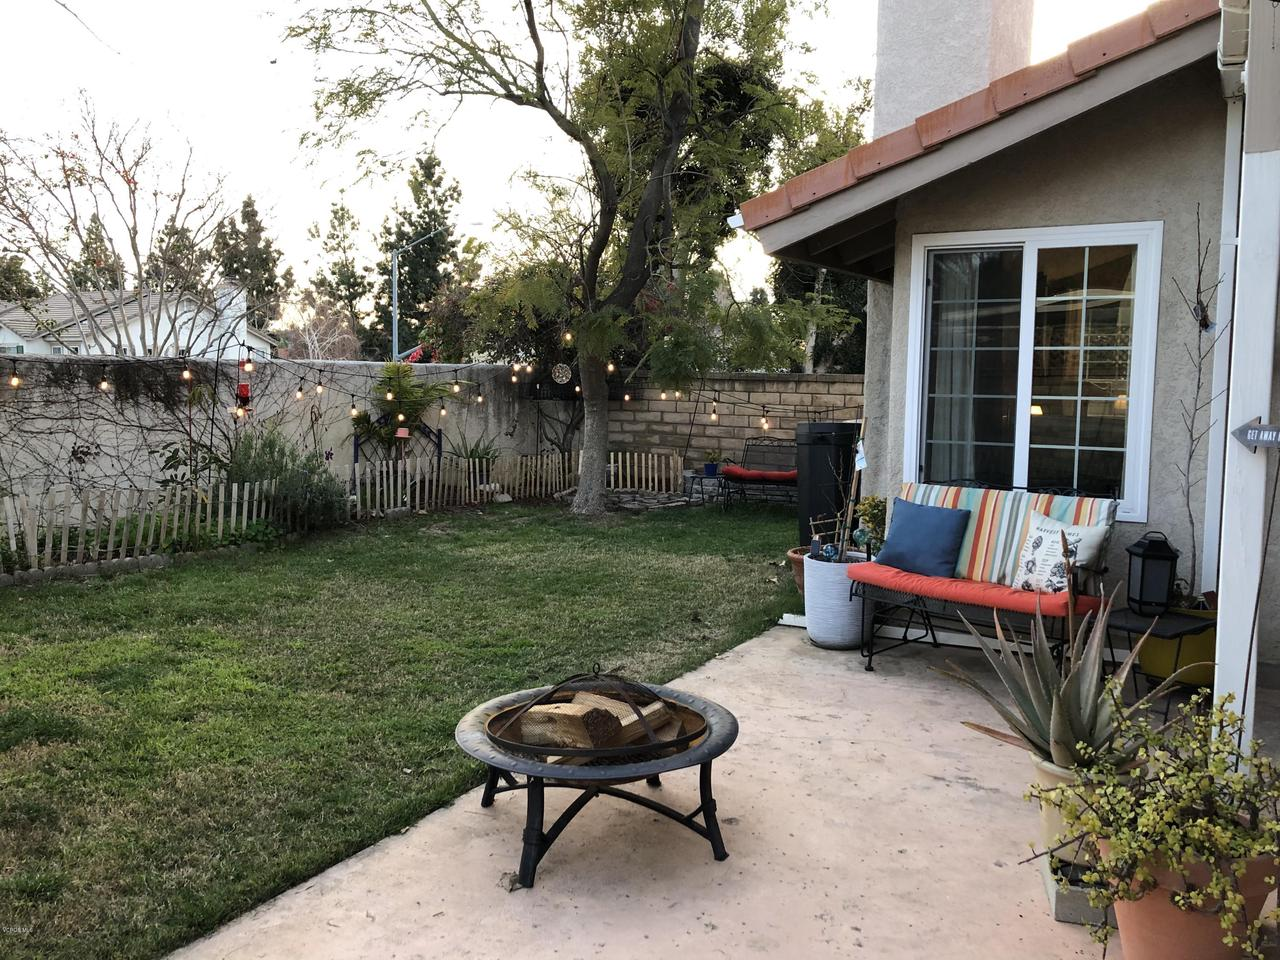 5228 MOHAVE, Simi Valley, CA 93063 - 5228 Mohave Dr 6